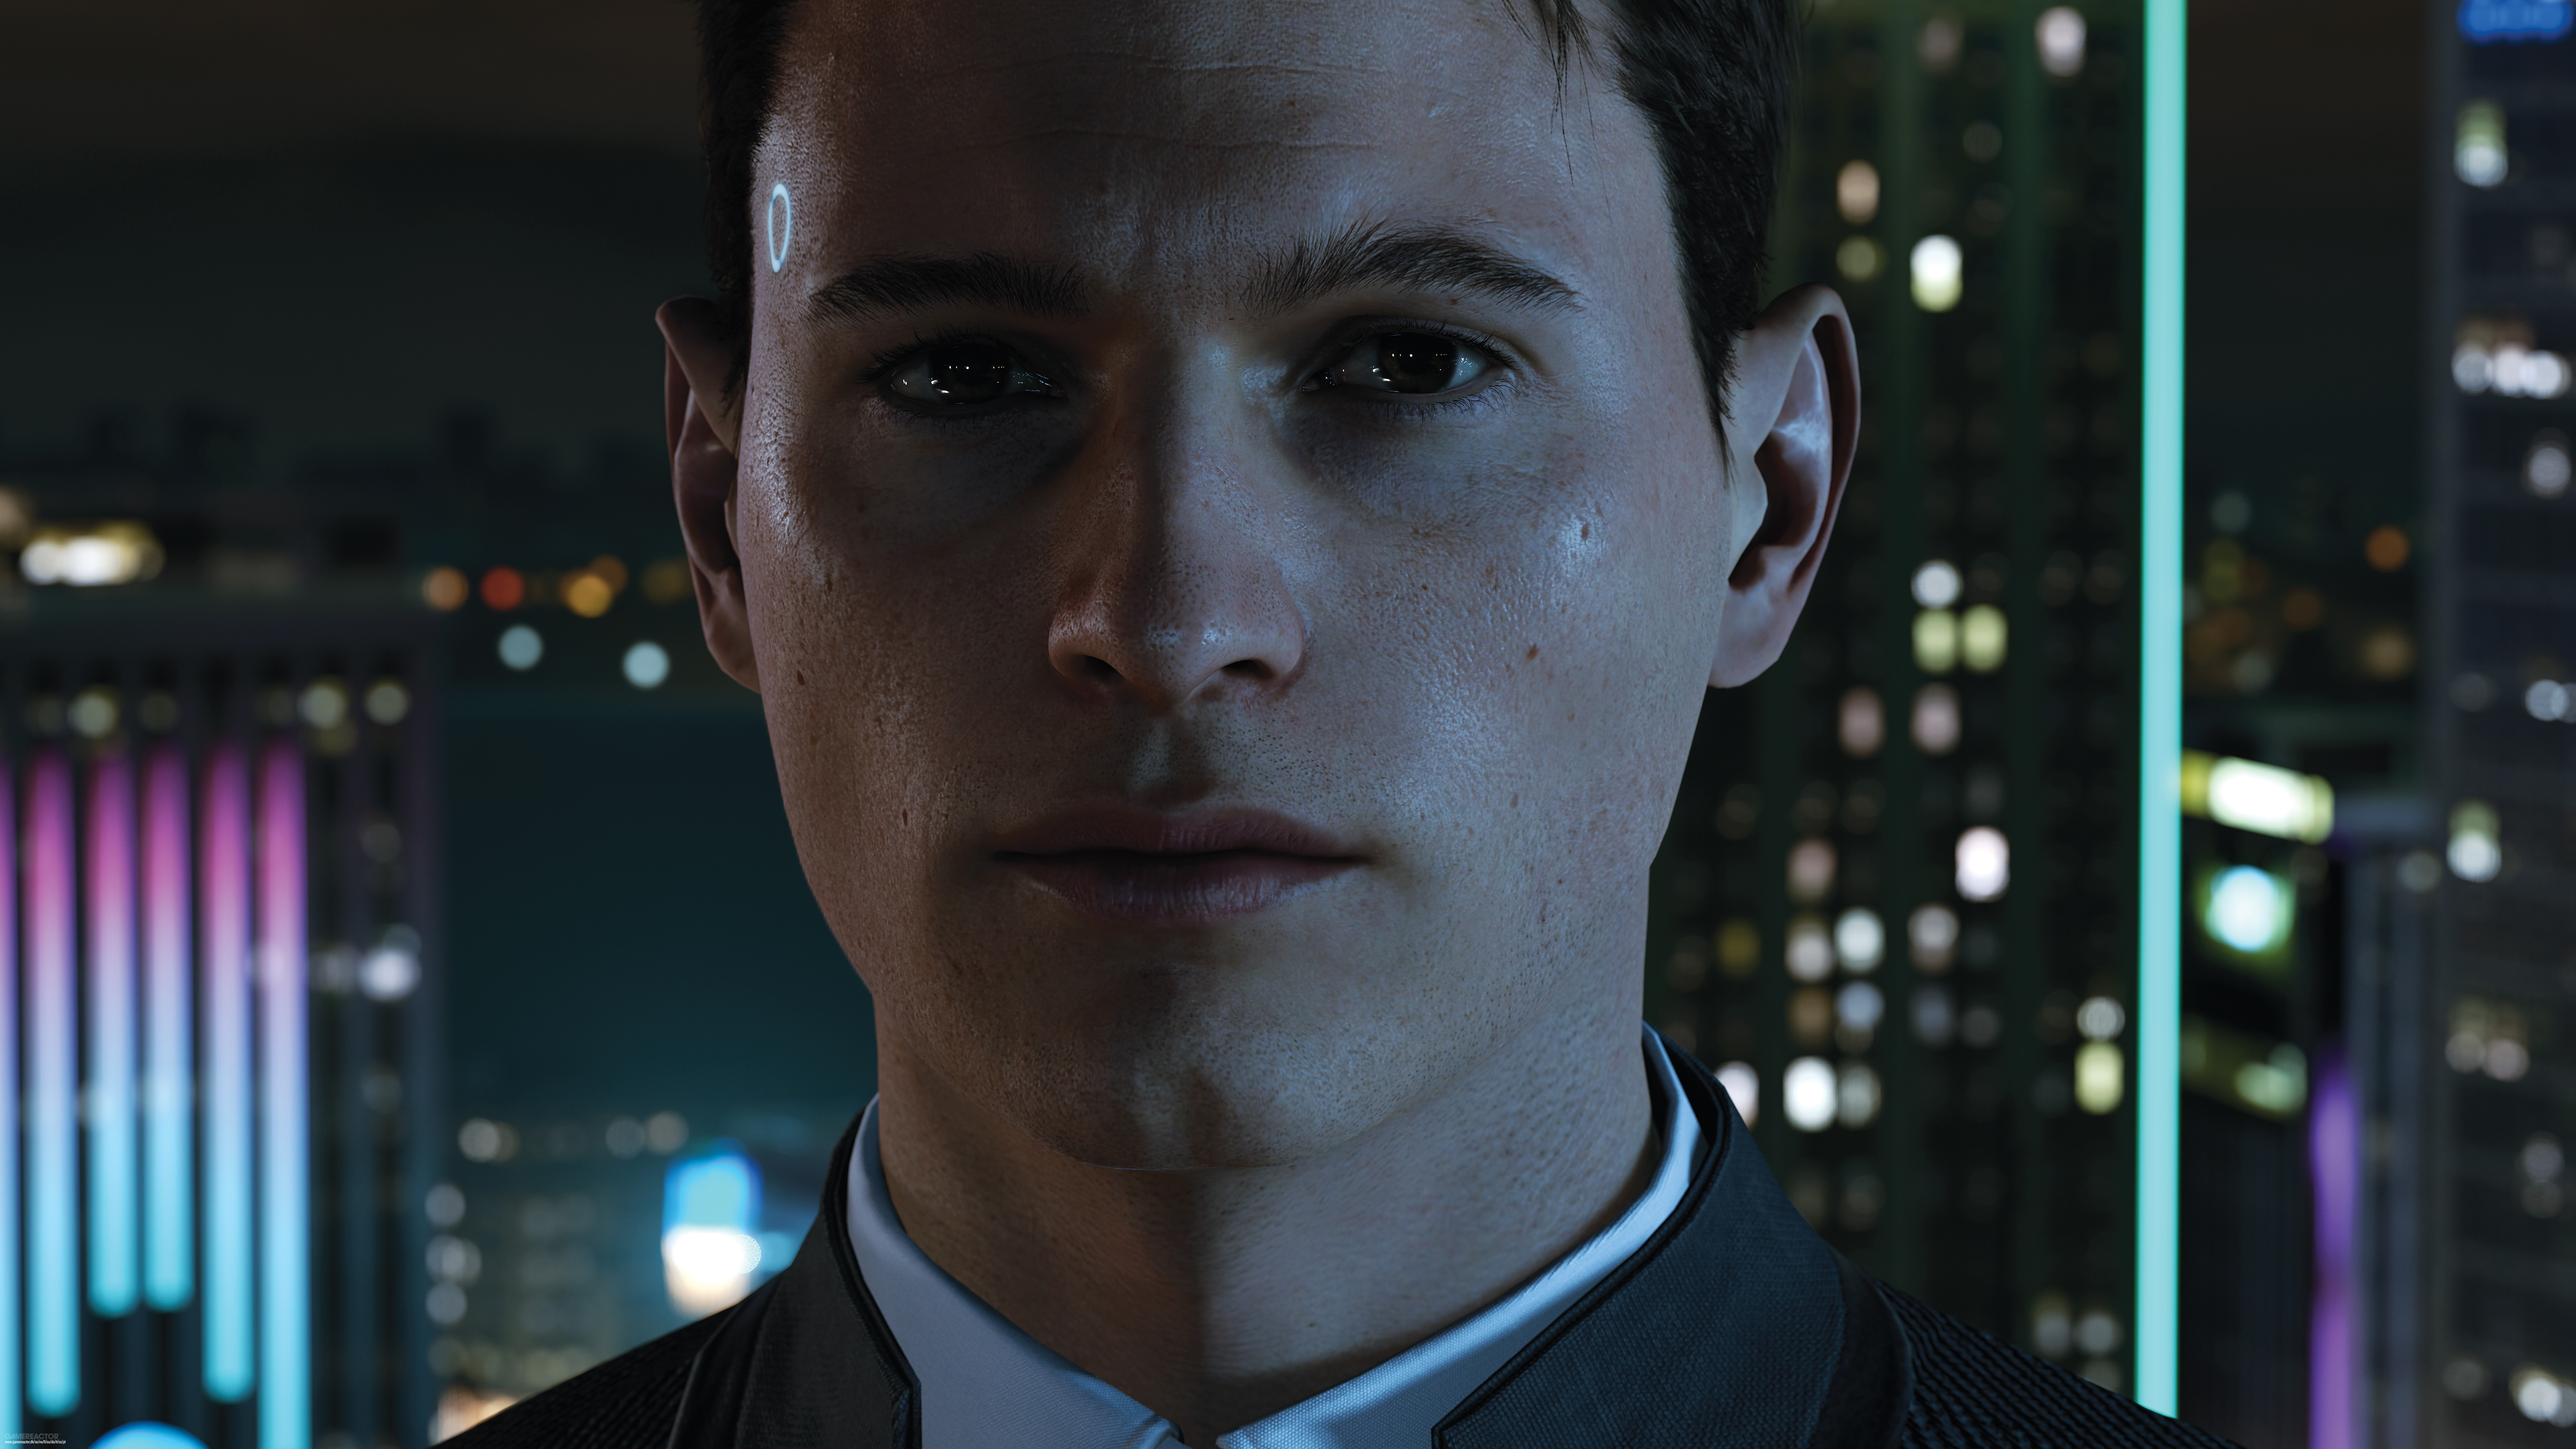 Connor Detroit Become Human Wallpaper: Detroit: Become Human Preview